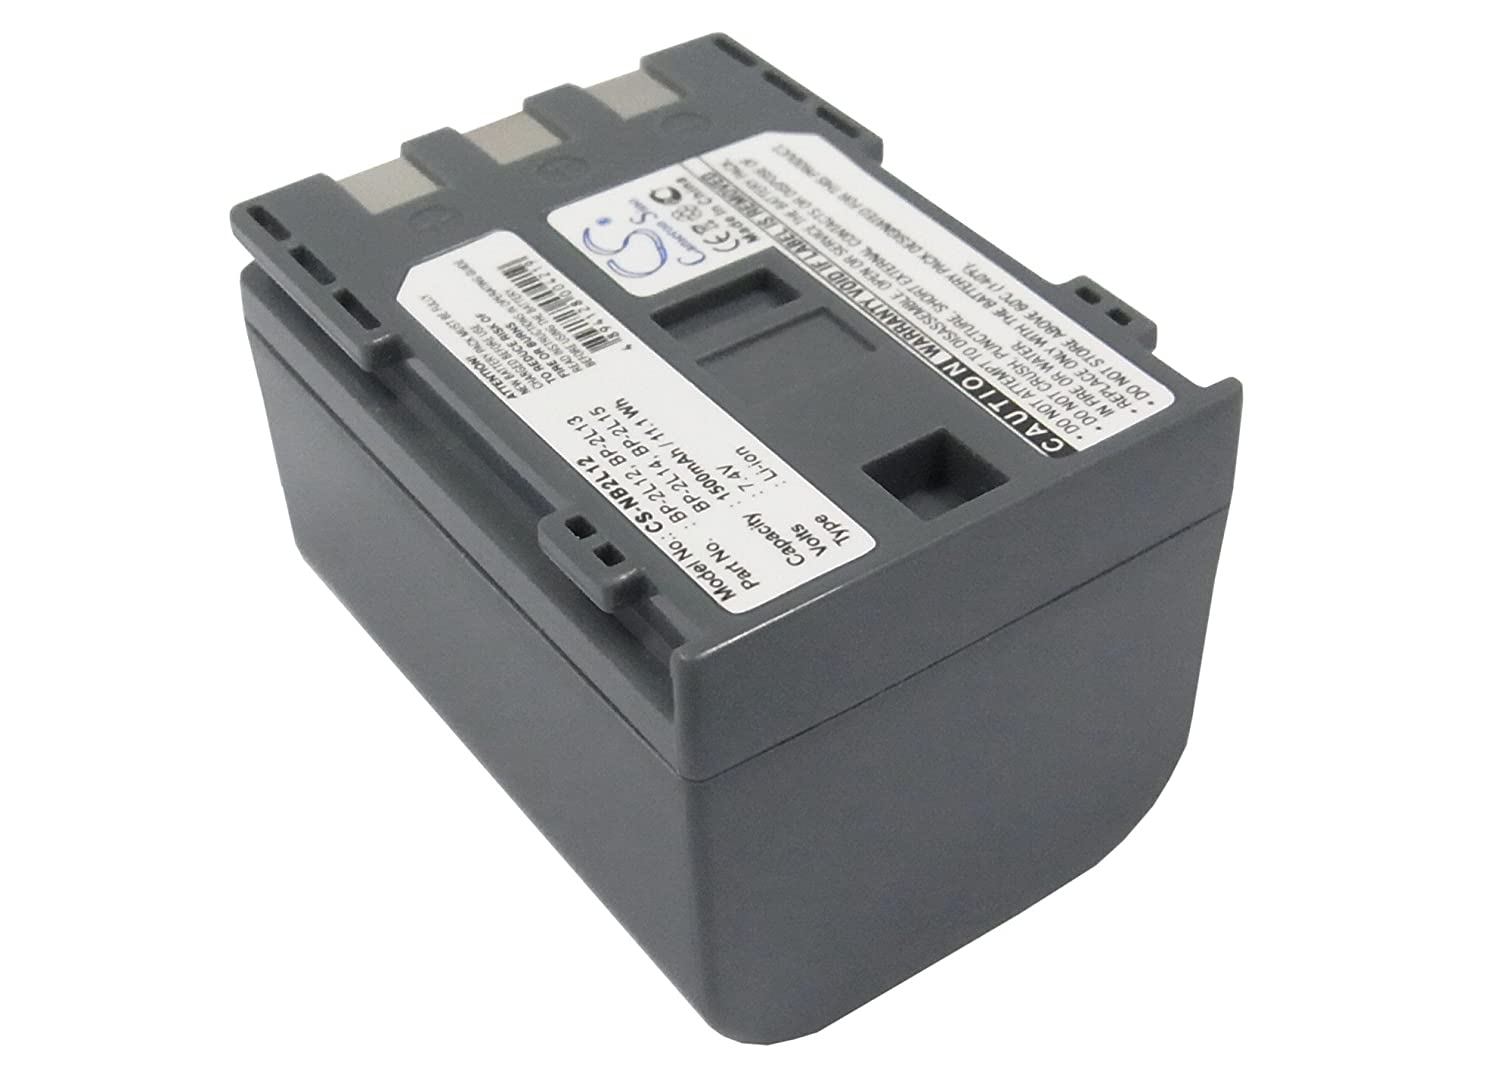 Cameron Sino Rechargeble Battery for Canon nb-2l12   B01B5JEGU4